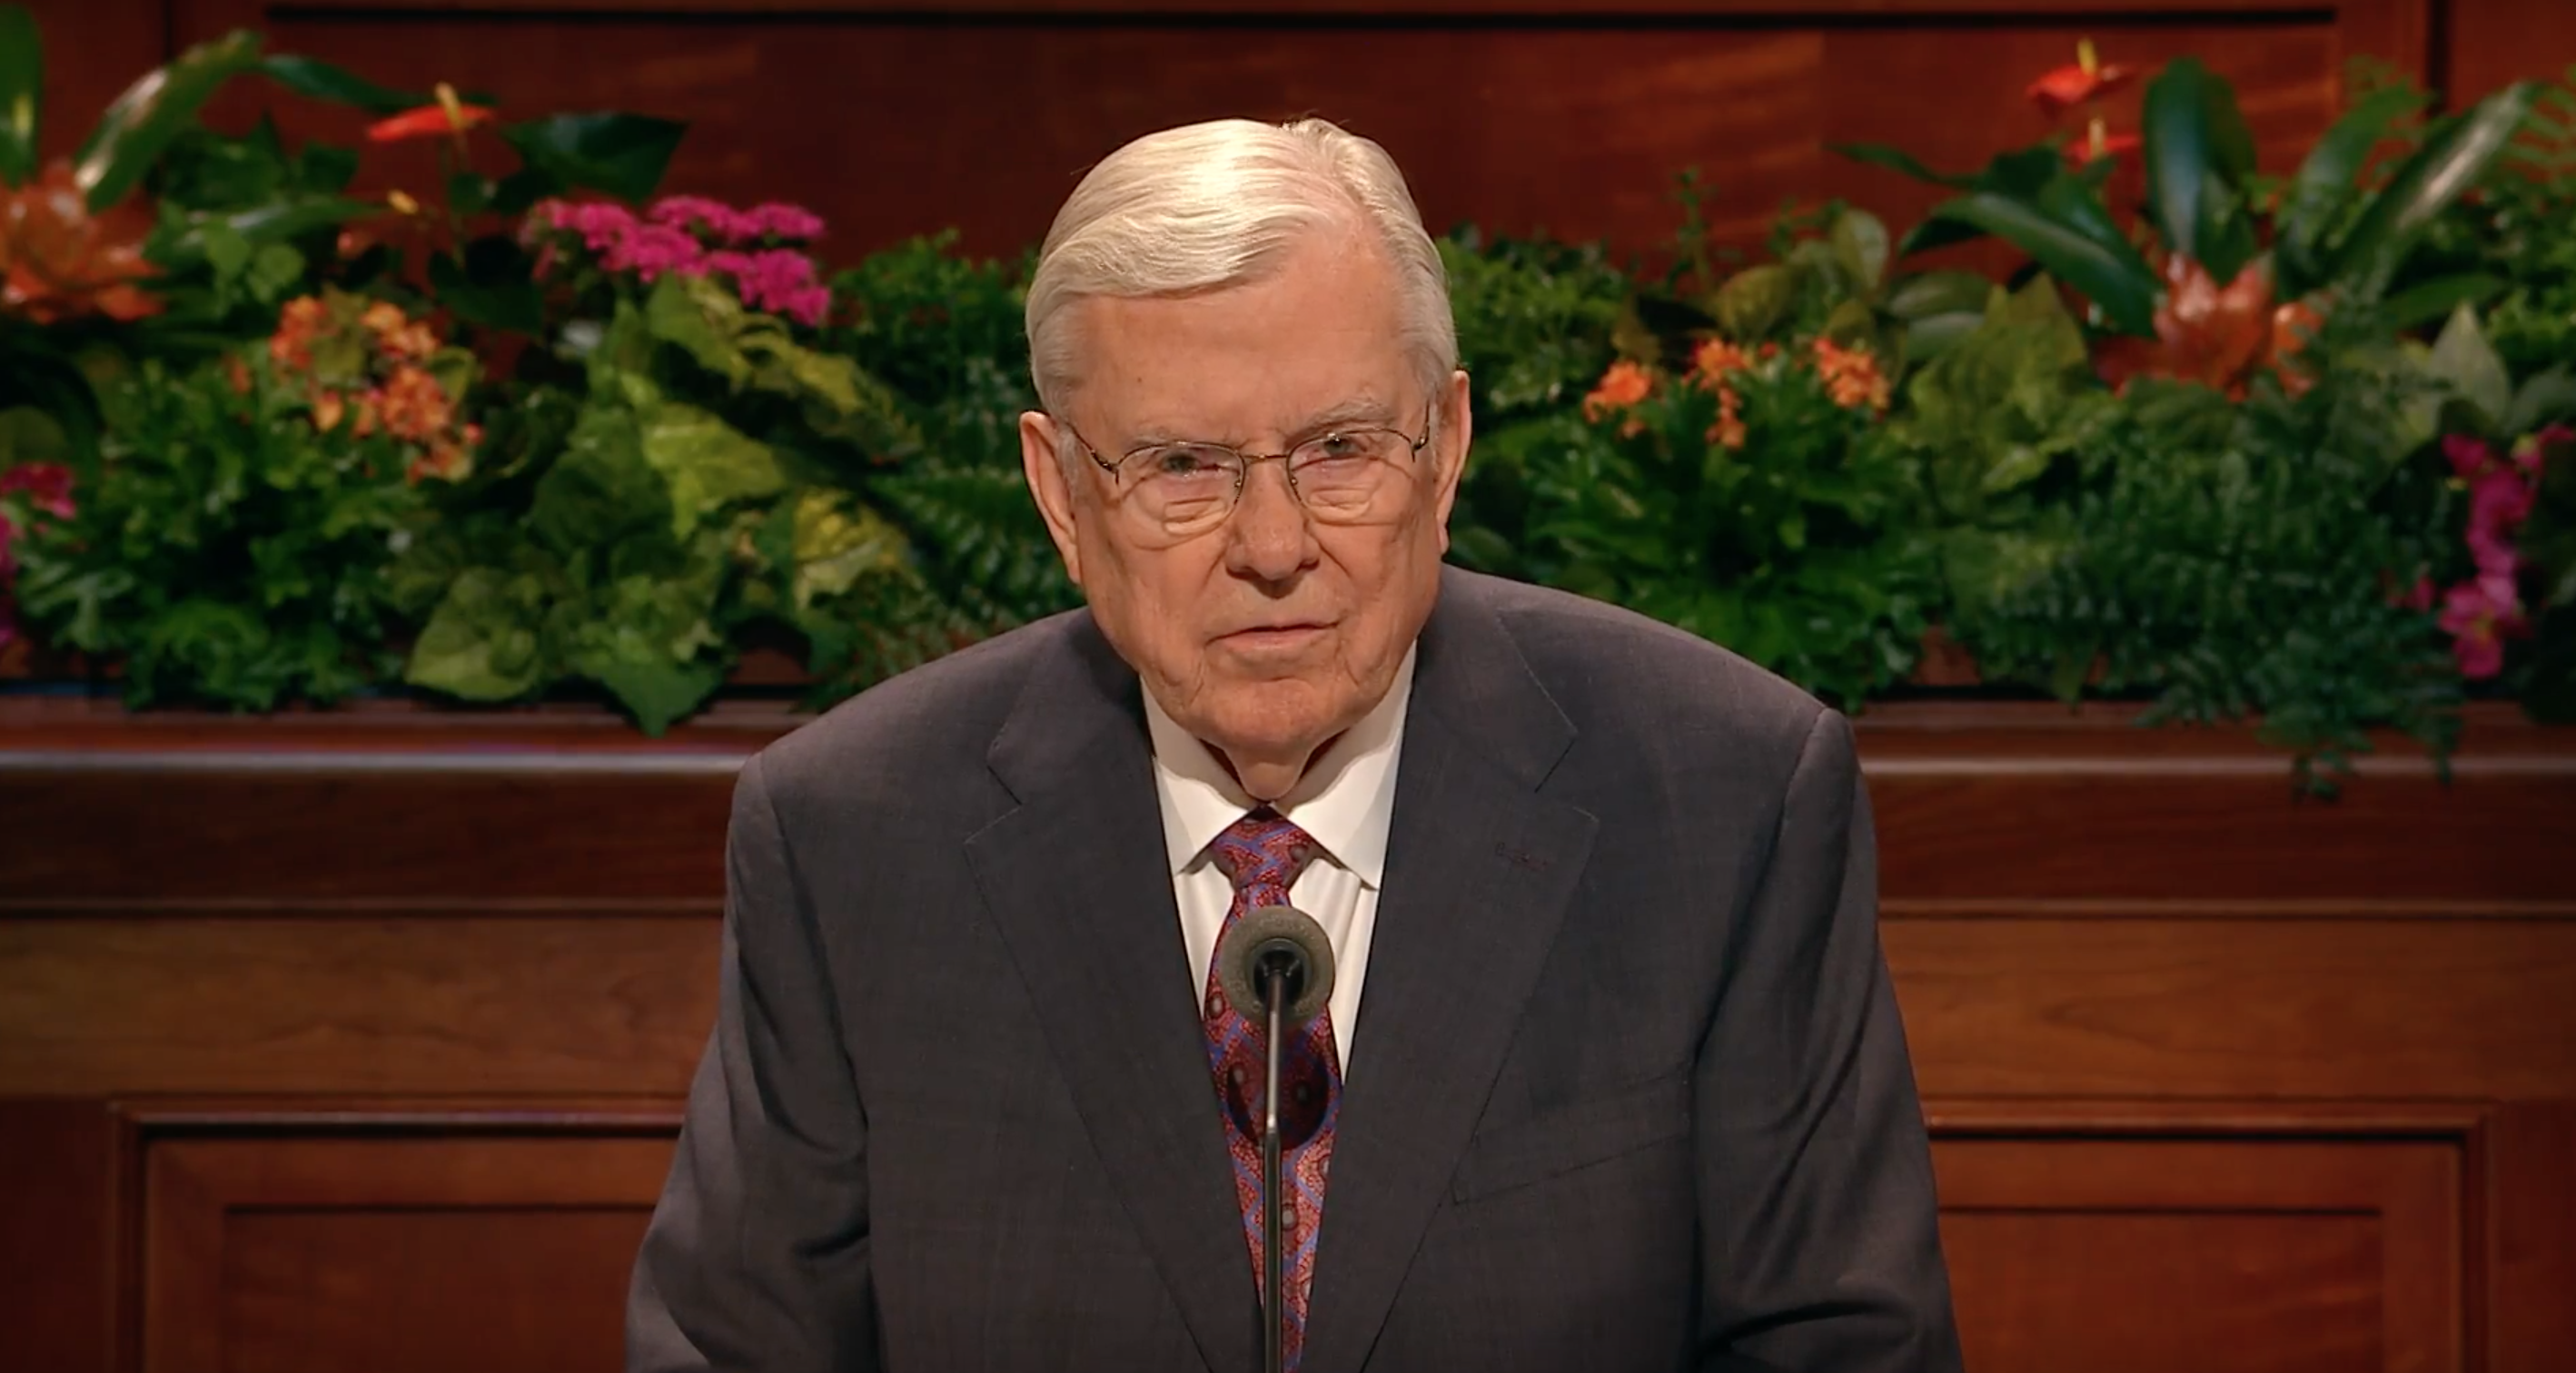 President M. Russell Ballard, Acting President of the Quorum of the Twelve Apostles, shares his October 2018 general conference address.